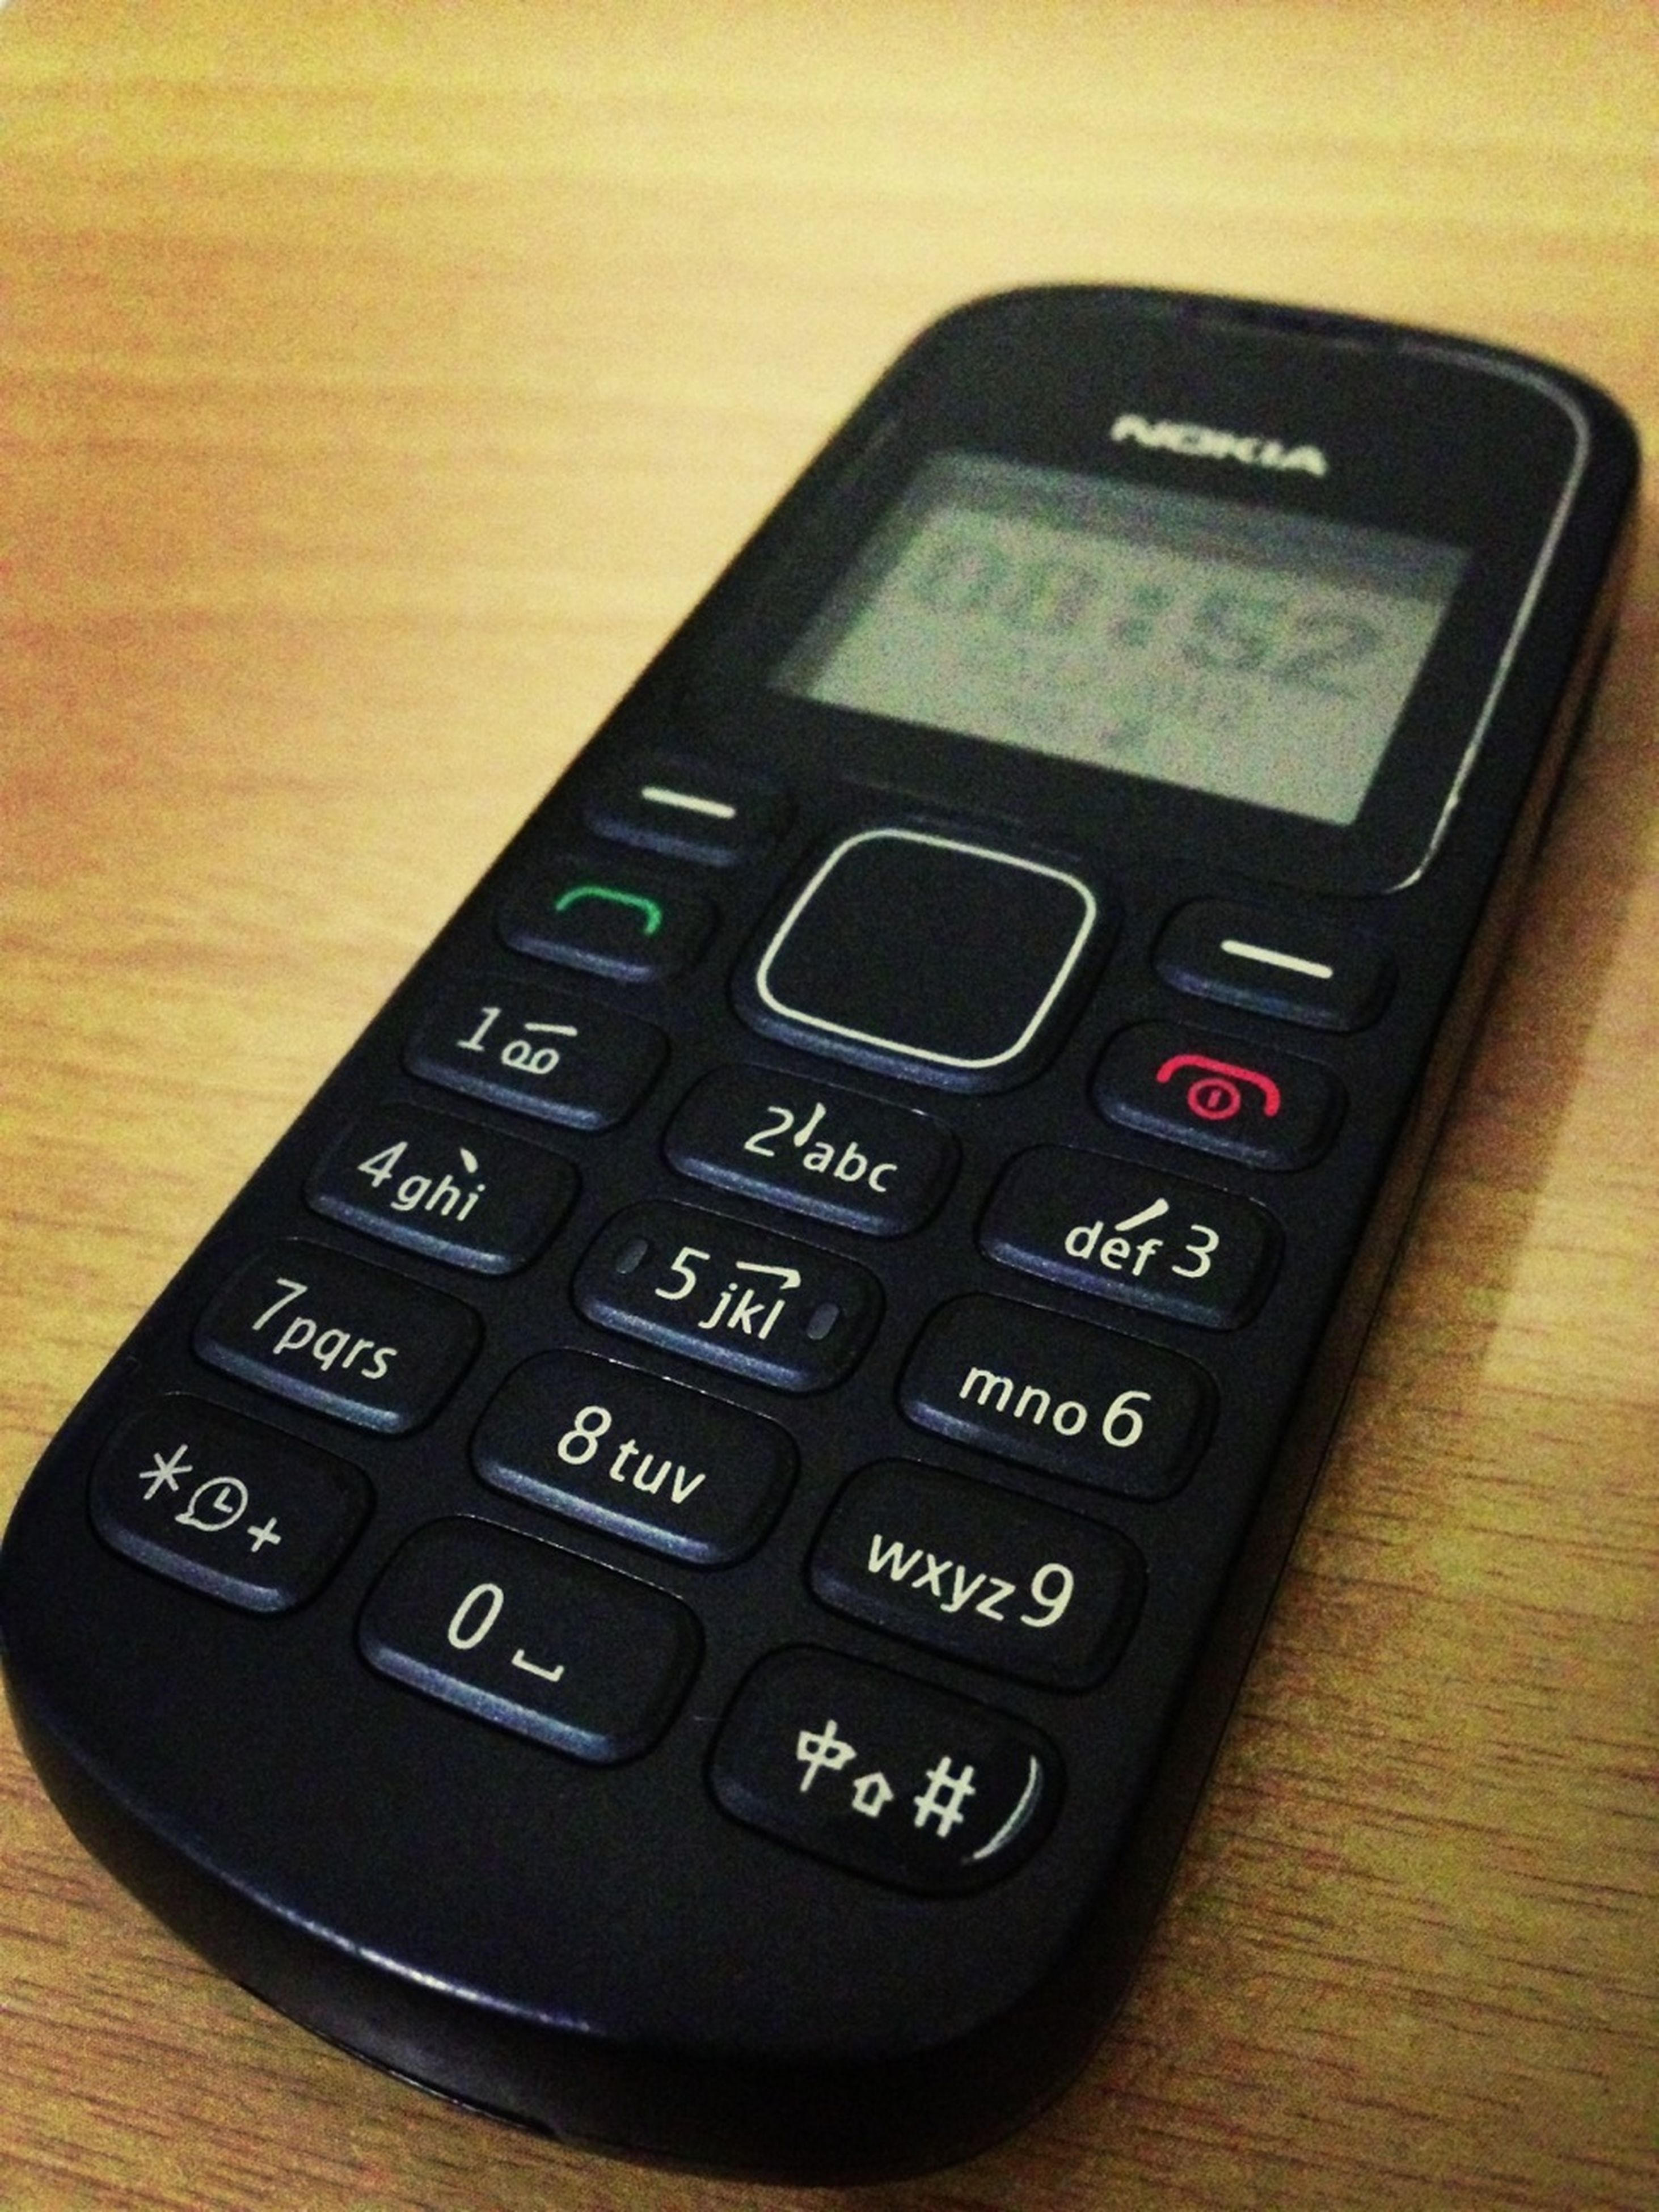 indoors, communication, technology, number, connection, close-up, text, wireless technology, western script, computer keyboard, telephone, high angle view, push button, computer key, control, laptop, alphabet, old-fashioned, no people, retro styled